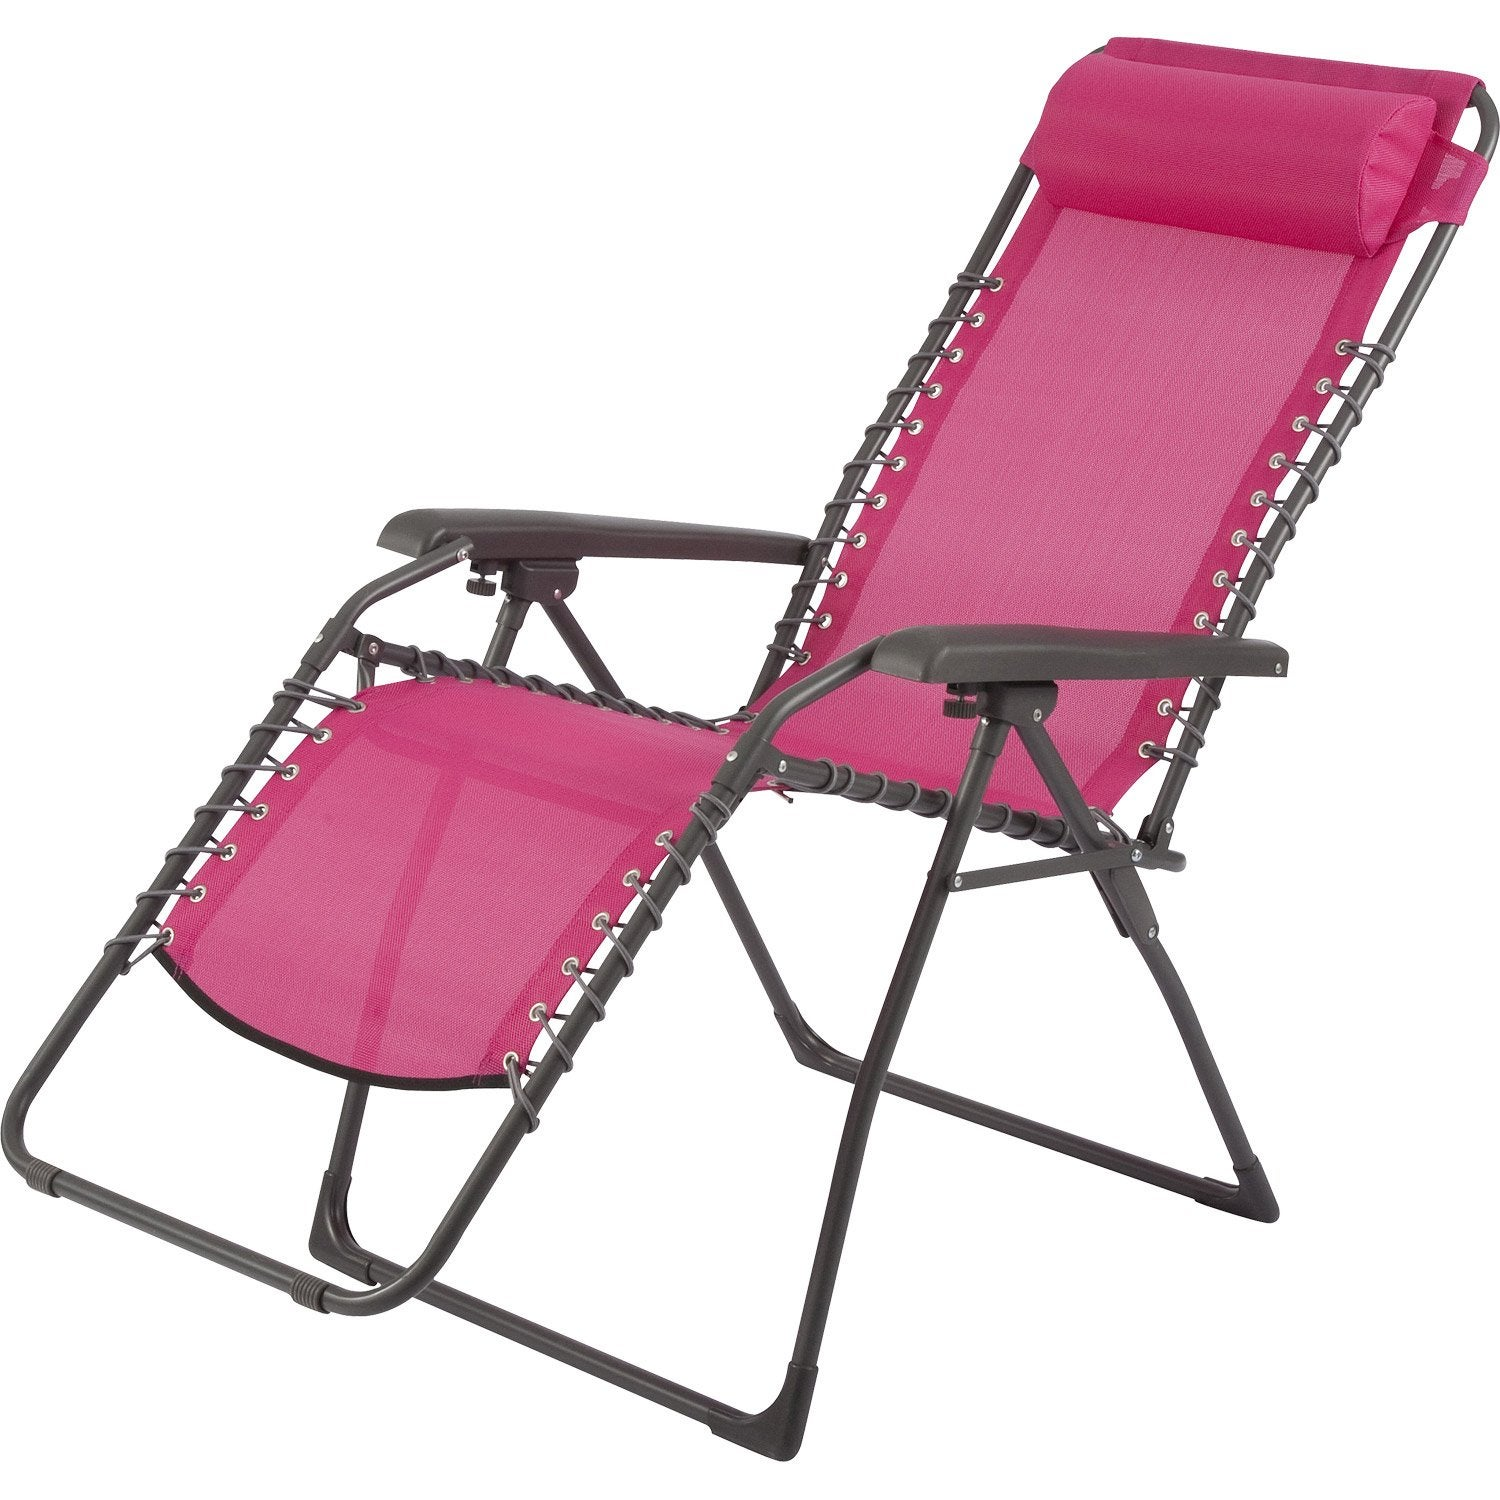 relax de jardin en acier lagon fuchsia leroy merlin. Black Bedroom Furniture Sets. Home Design Ideas